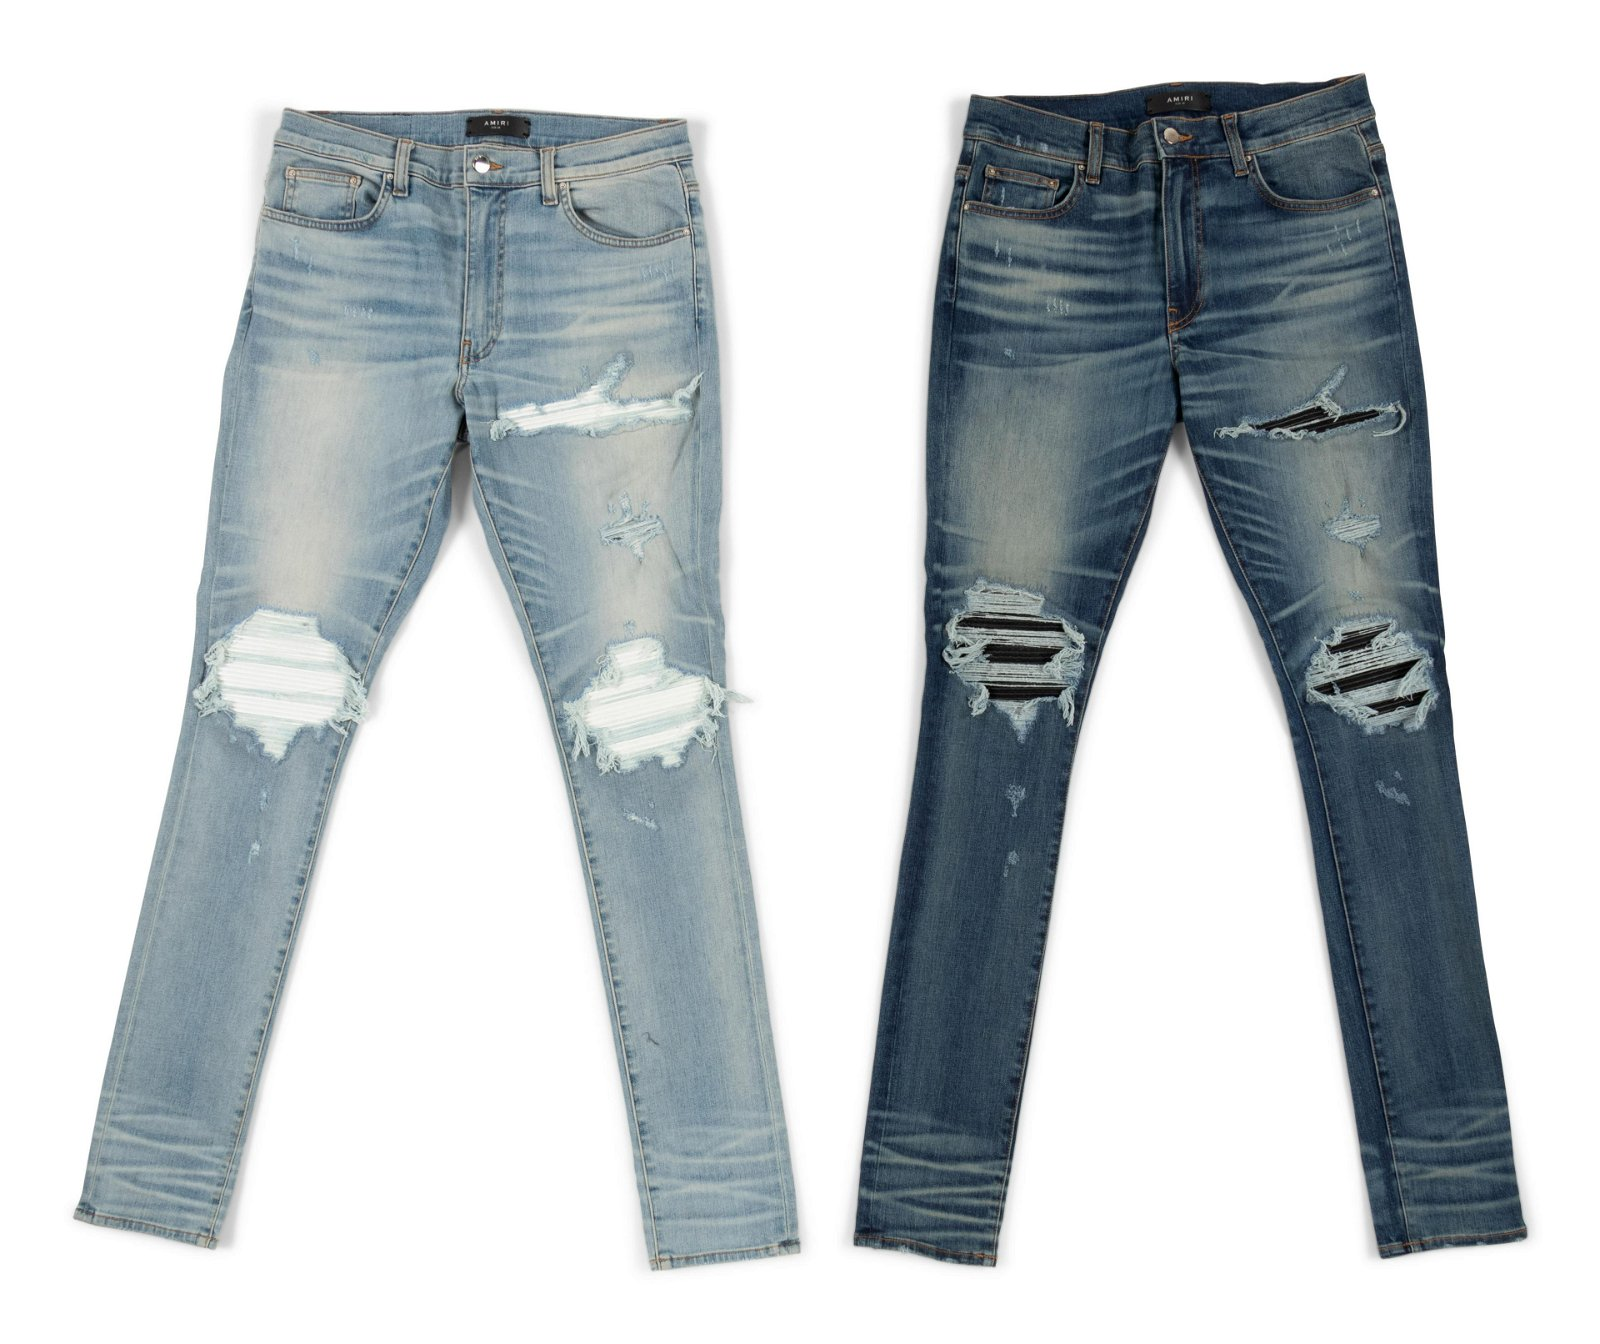 Two Pairs of Amiri Jeans, c.2017